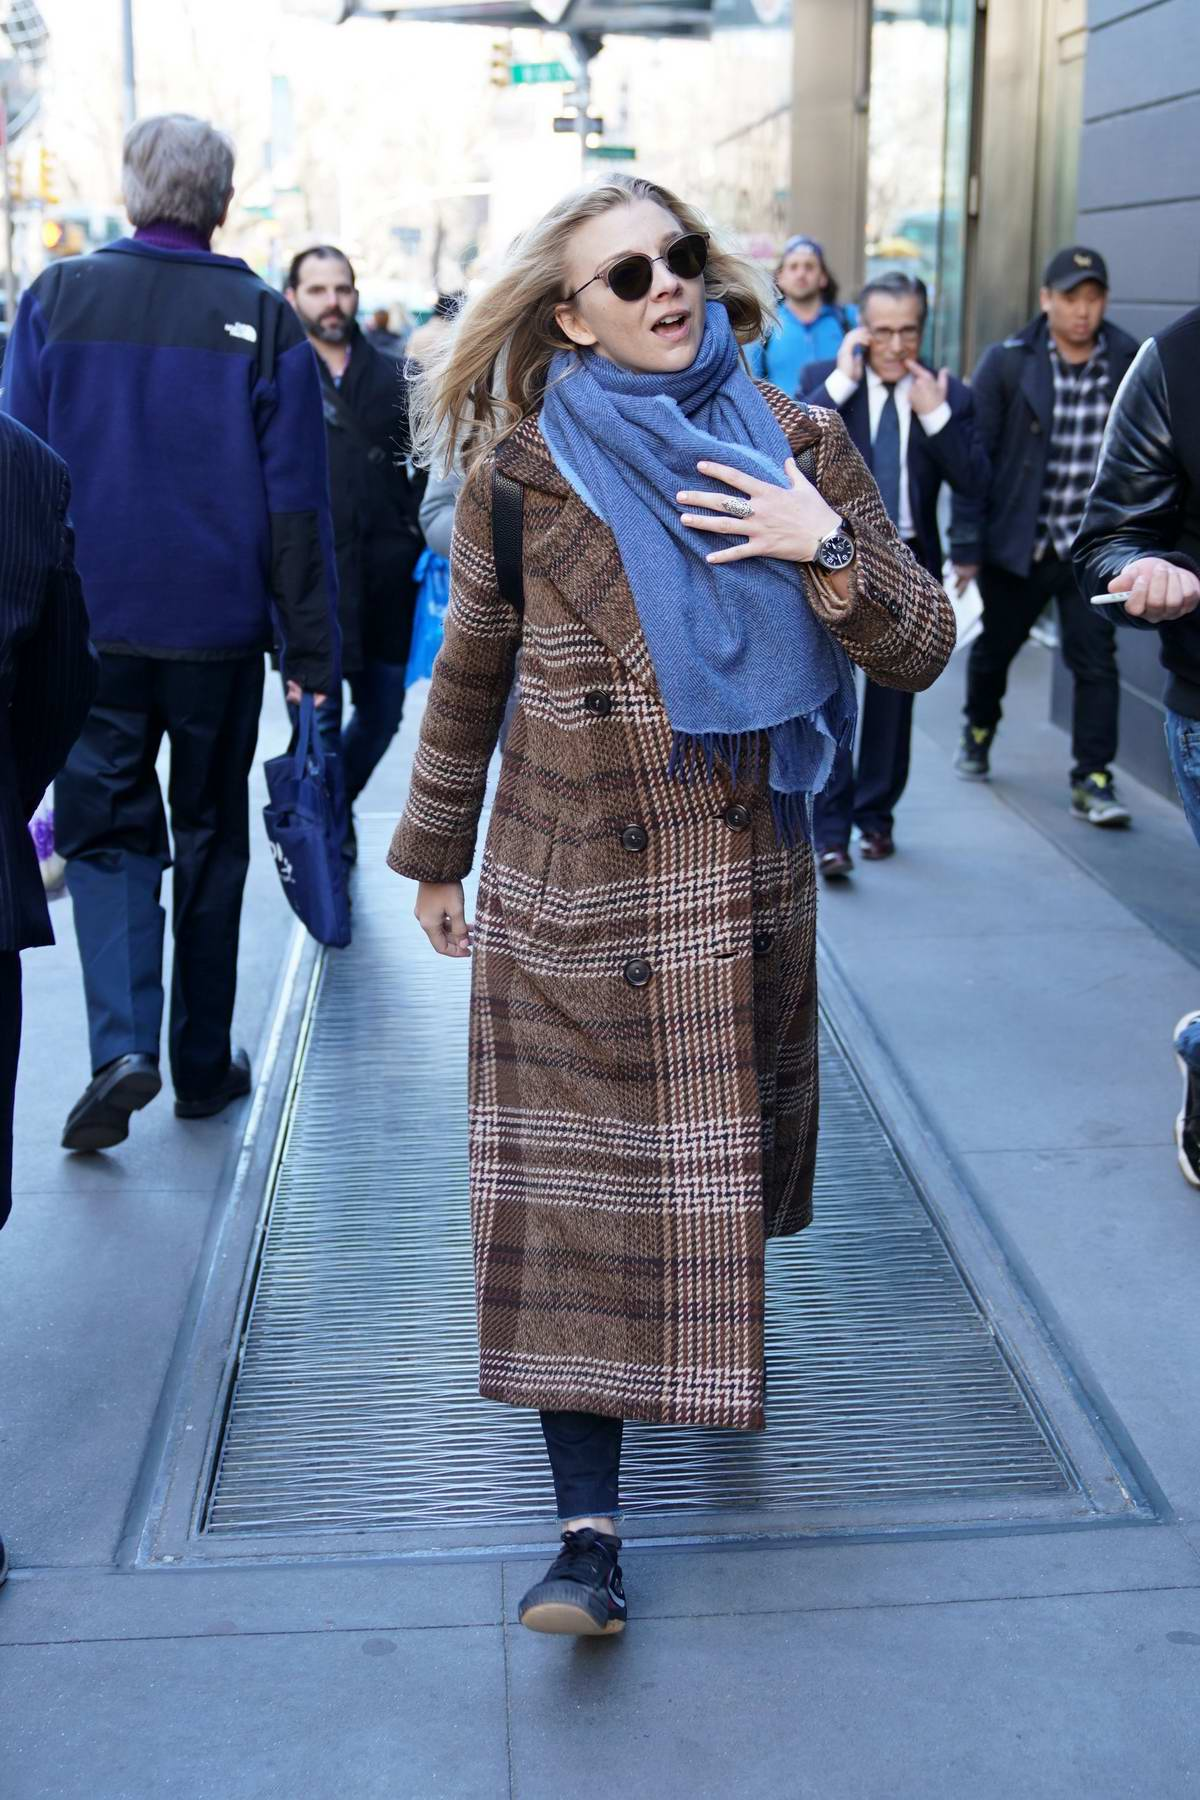 Natalie Dormer bundles up in a plaid long coat and a blue scarf while out and about in New York City